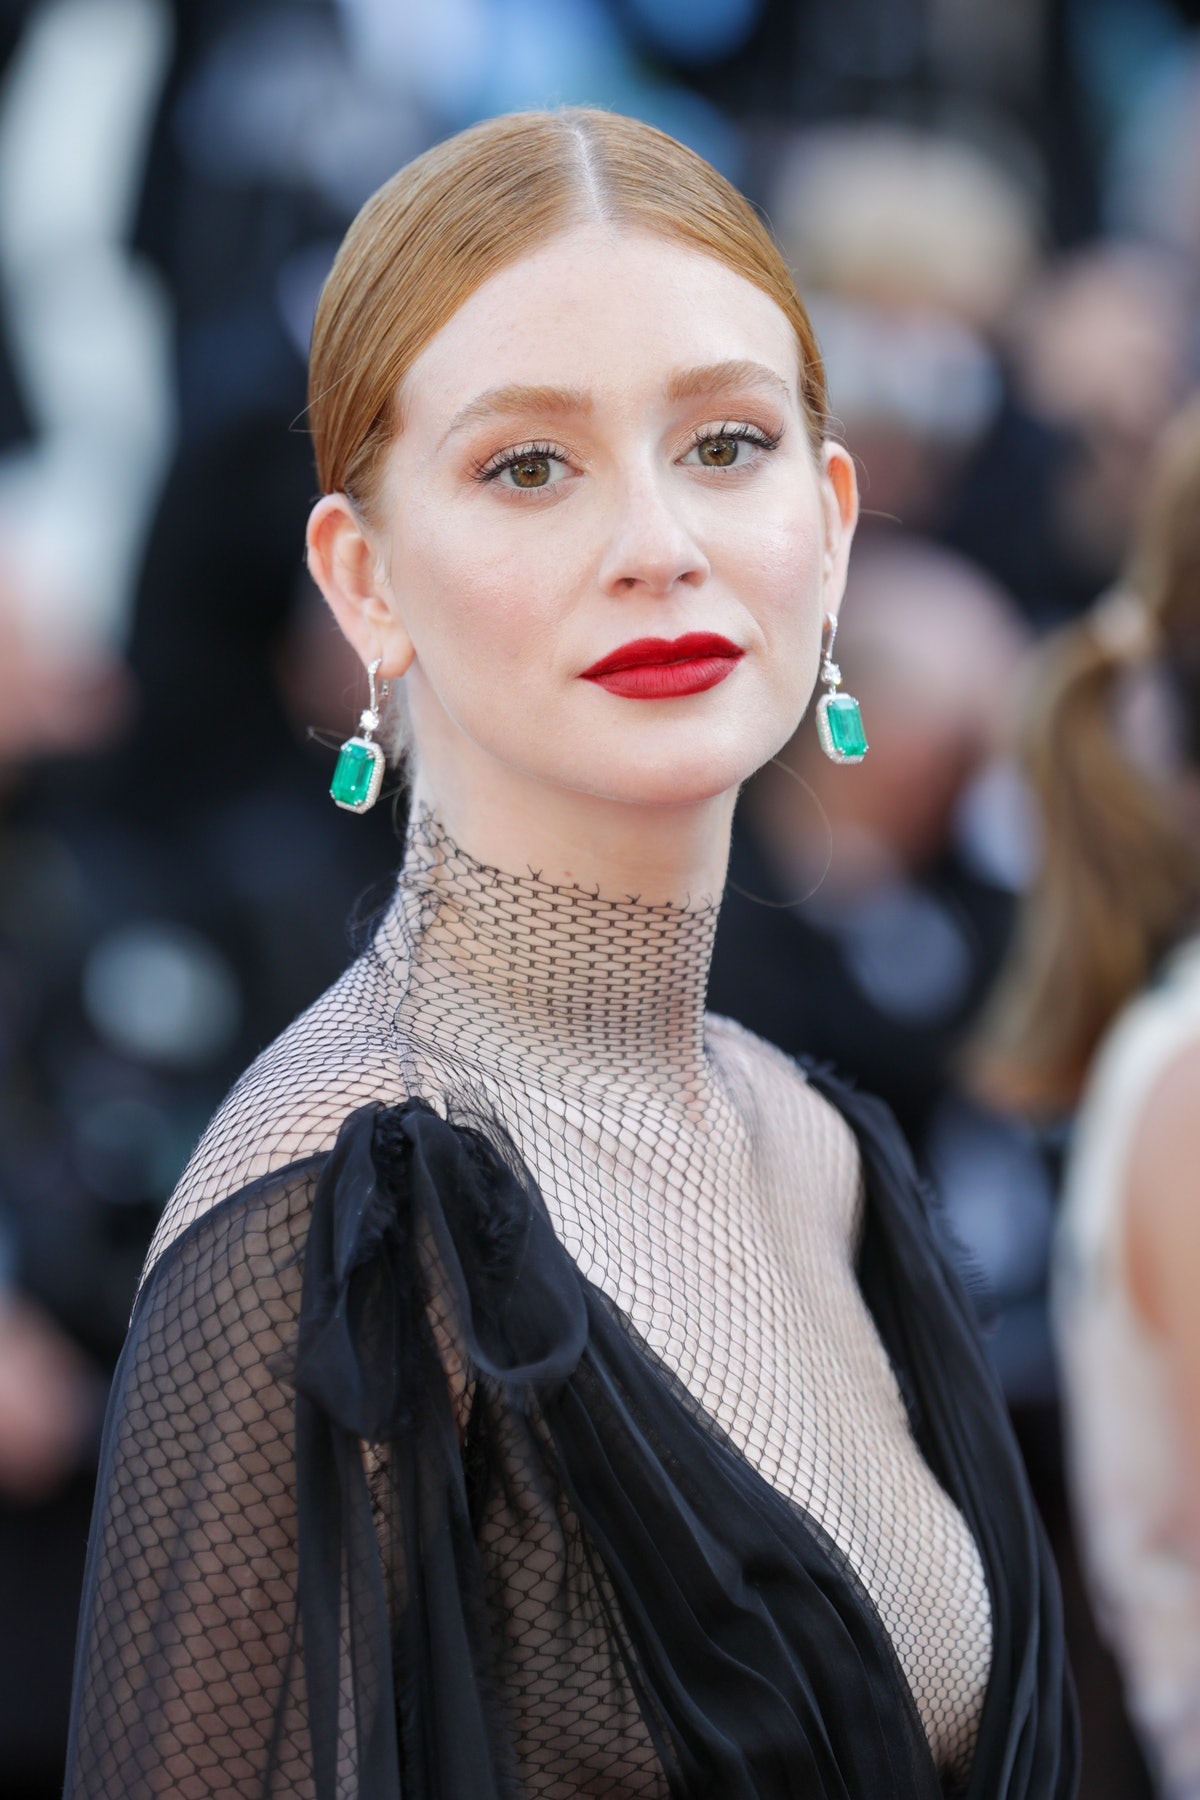 """CANNES, FRANCE - JULY 11: Marina Ruy Barbosa attends the """"Tre Piani (Three Floors)"""" screening during the 74th annual Cannes Film Festival on July 11, 2021 in Cannes, France. (Photo by Stephane Cardinale - Corbis/Corbis via Getty Images)"""